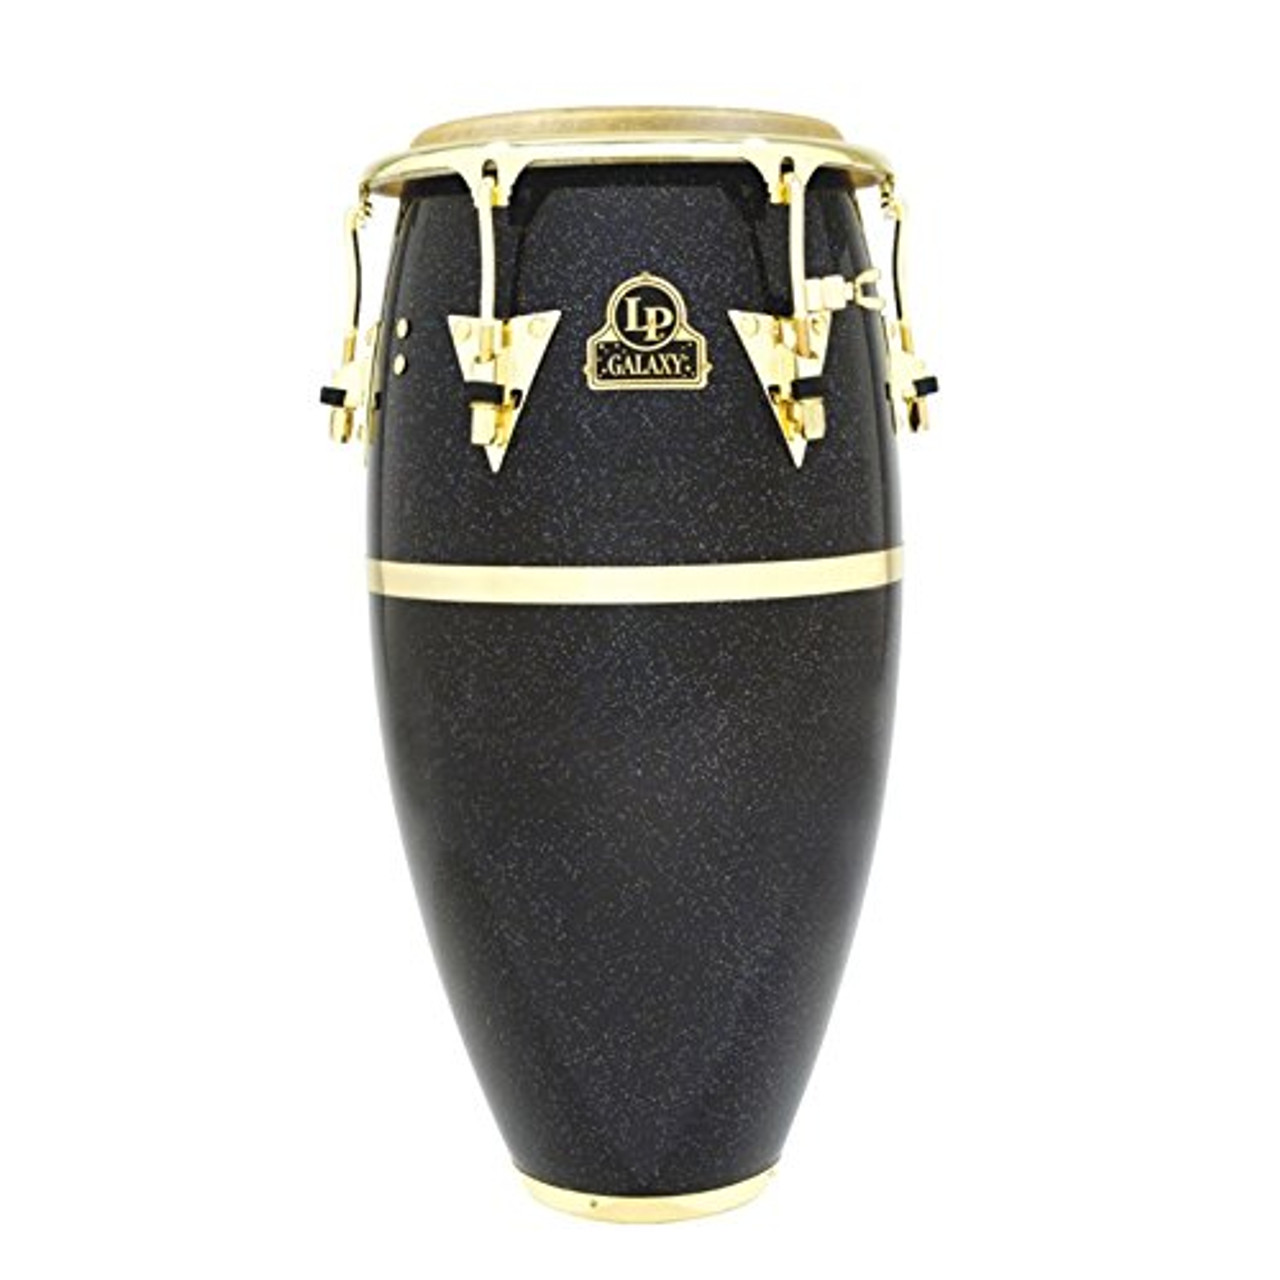 Drum Workshop Galaxy Ccii 12 1/2 Tumba Fg Black Gd